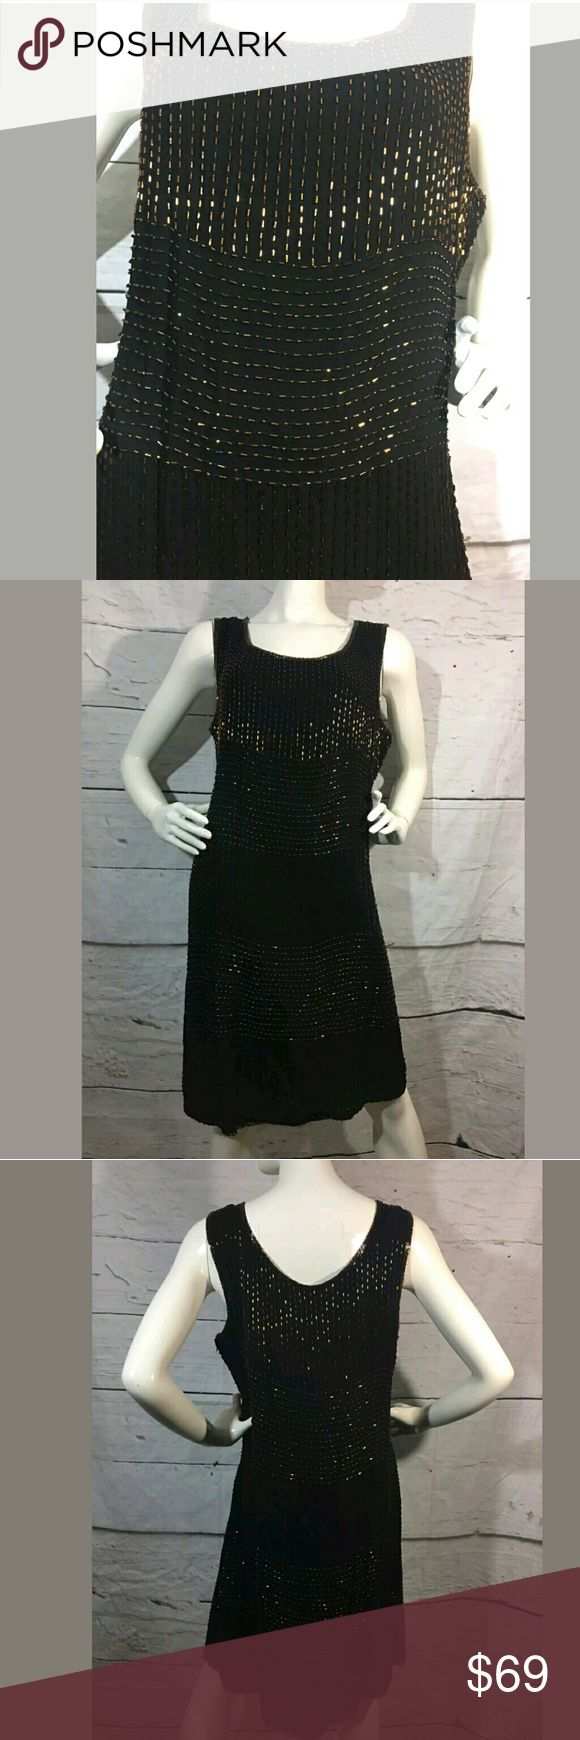 NWOT Beaded Cocktail Flapper Style Dress NWOT Women's Beaded Cocktail Flapper Style Dress Black Gold Size 18 New.  No tags, but bag with extra beads is attached.  LB Styleworks Dresses